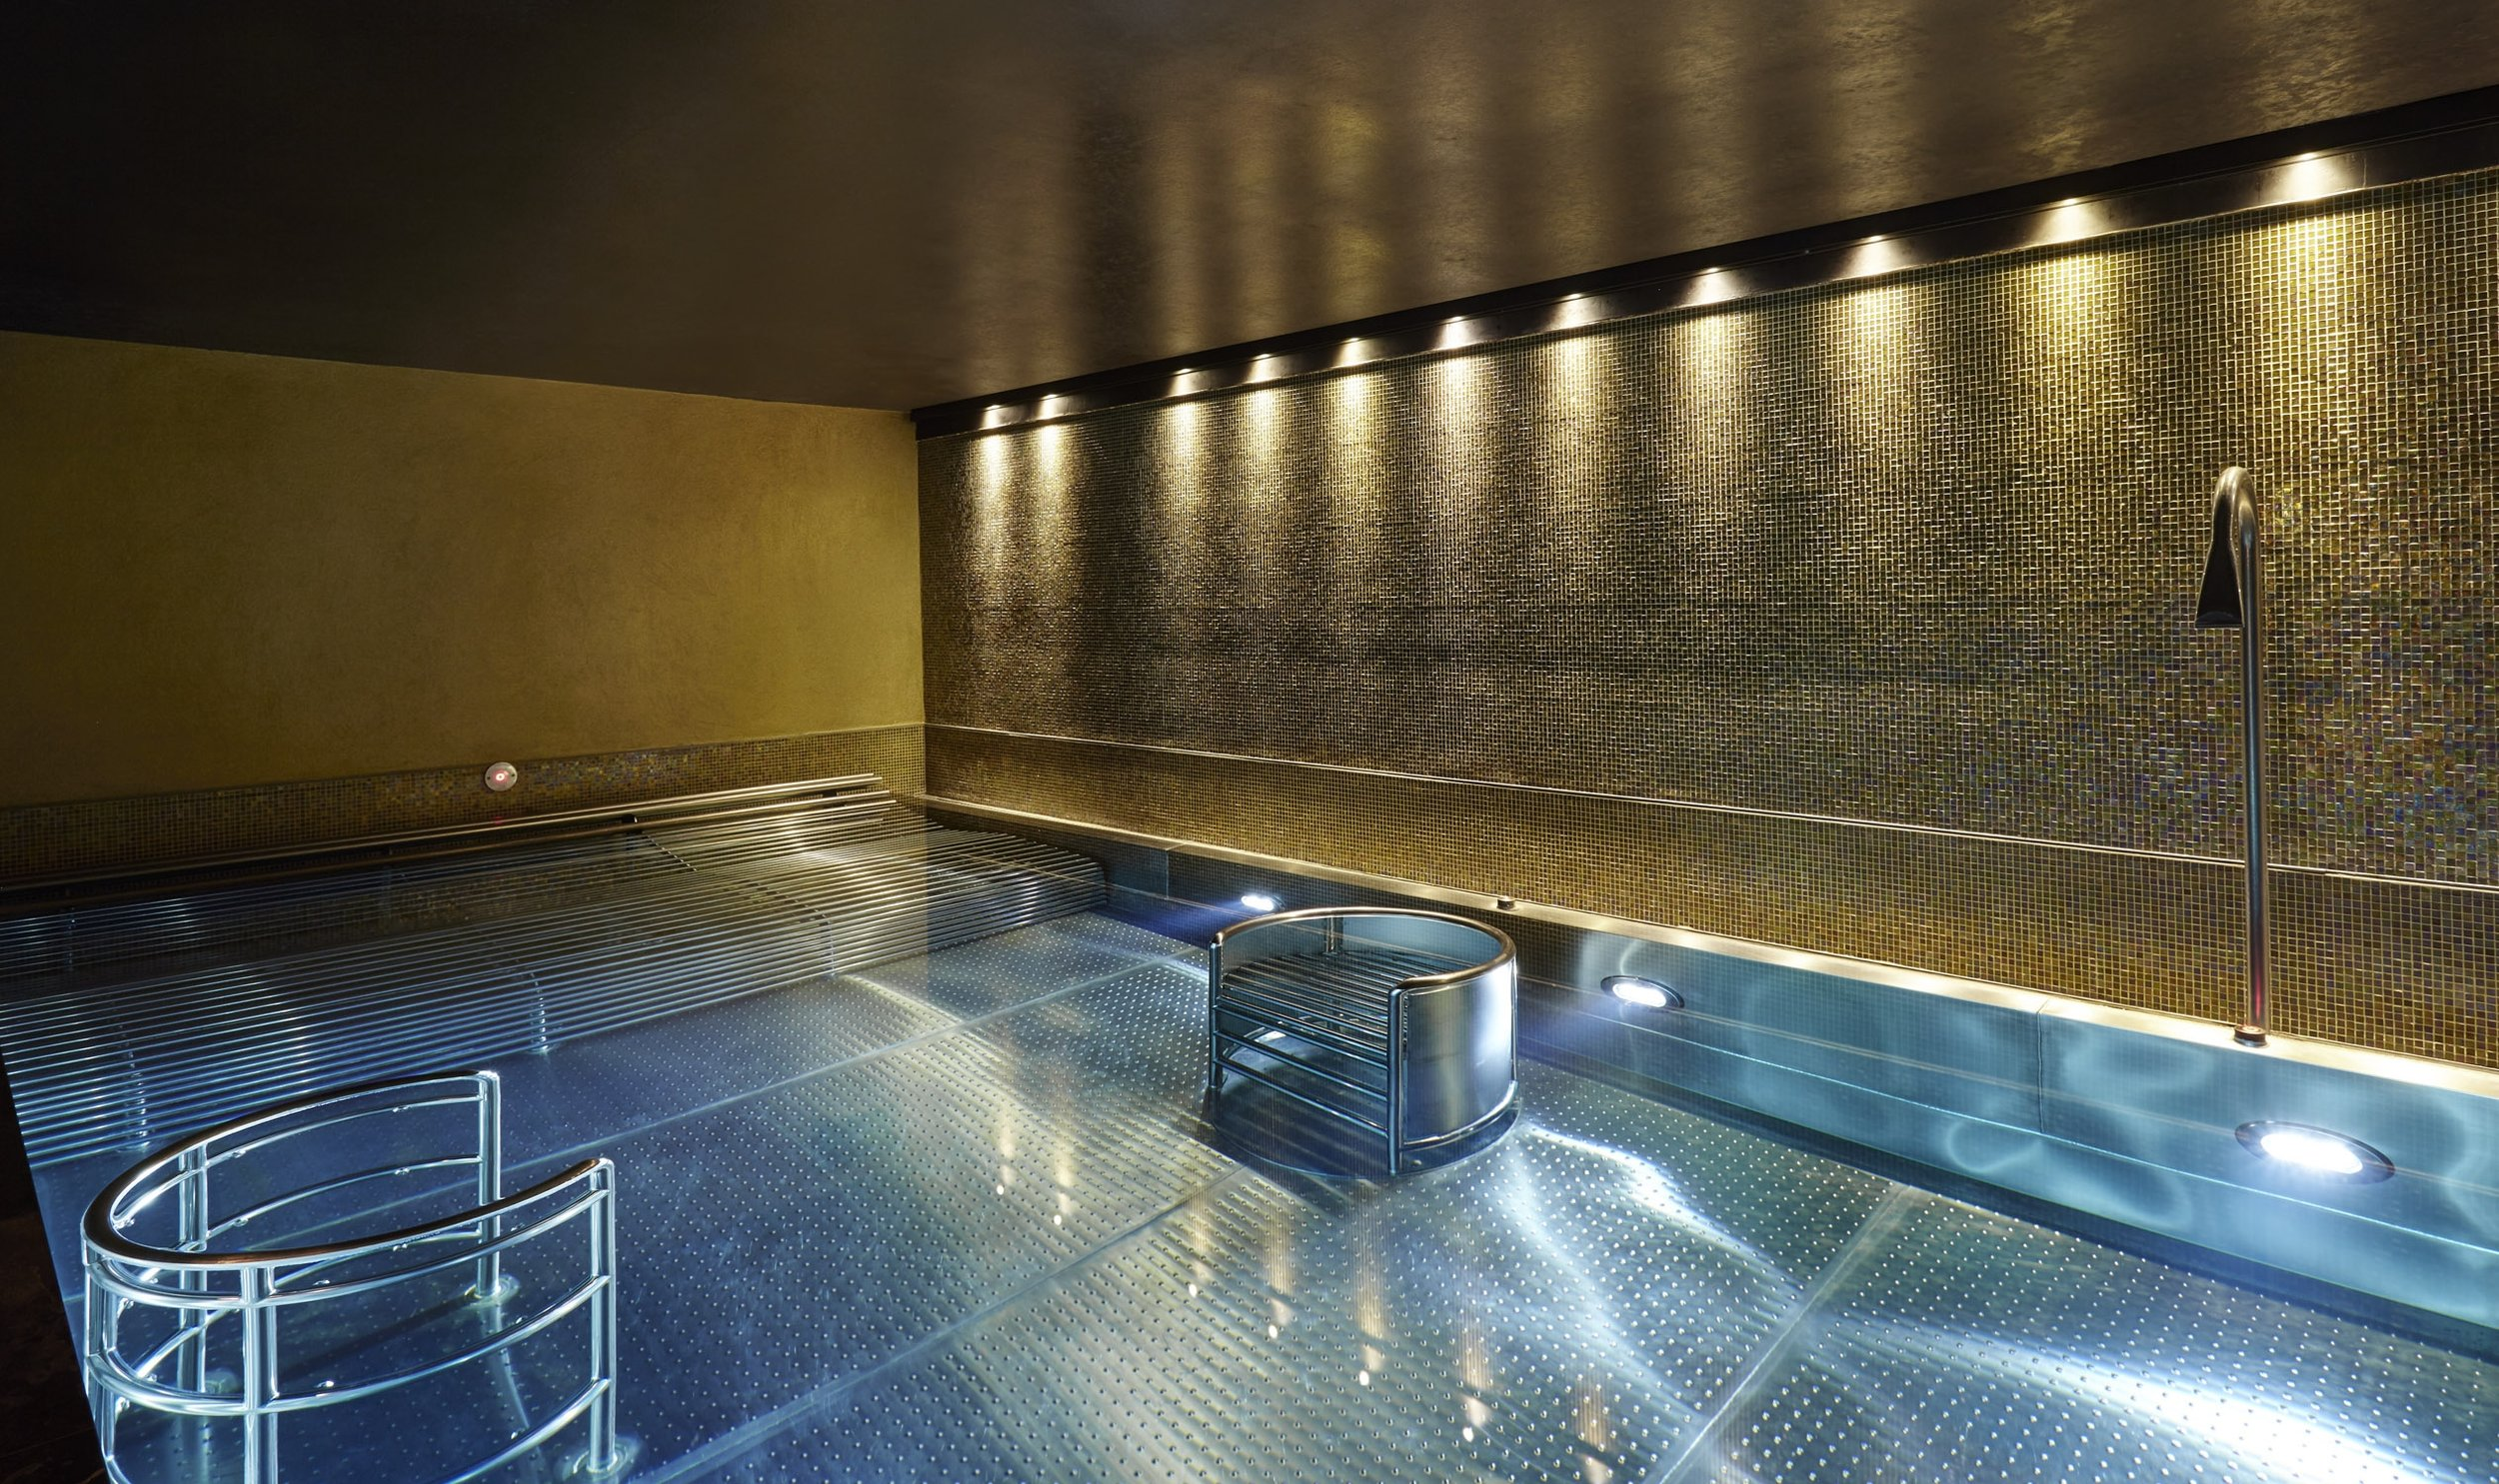 WATER THERAPY: Subterranean Hydrotherapy pool with Jacuzzi jets